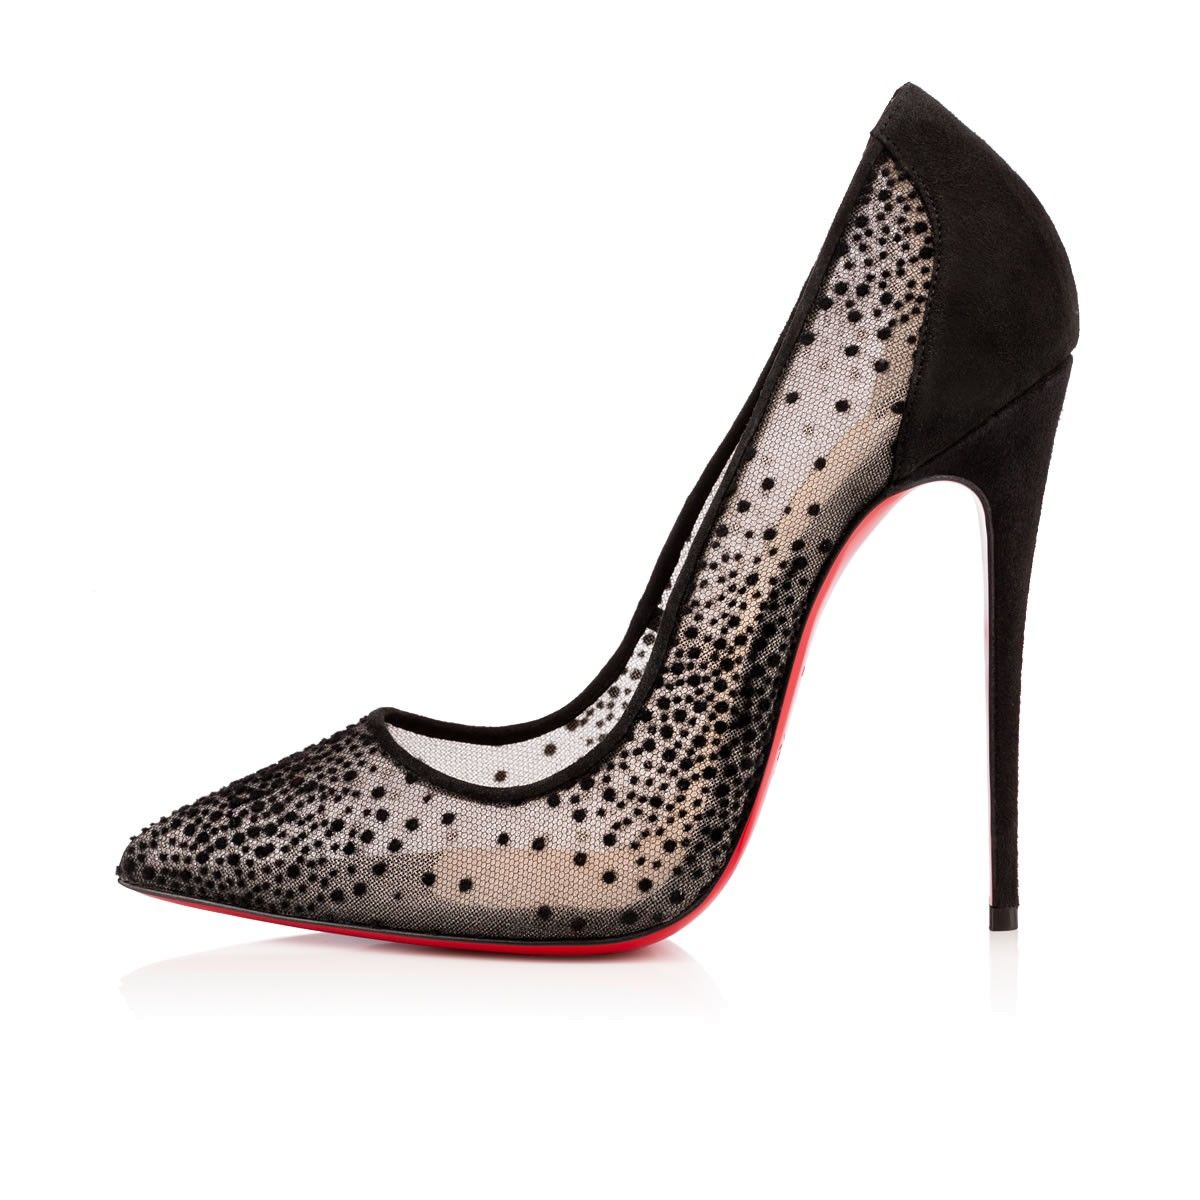 christian louboutin shoes online shopping